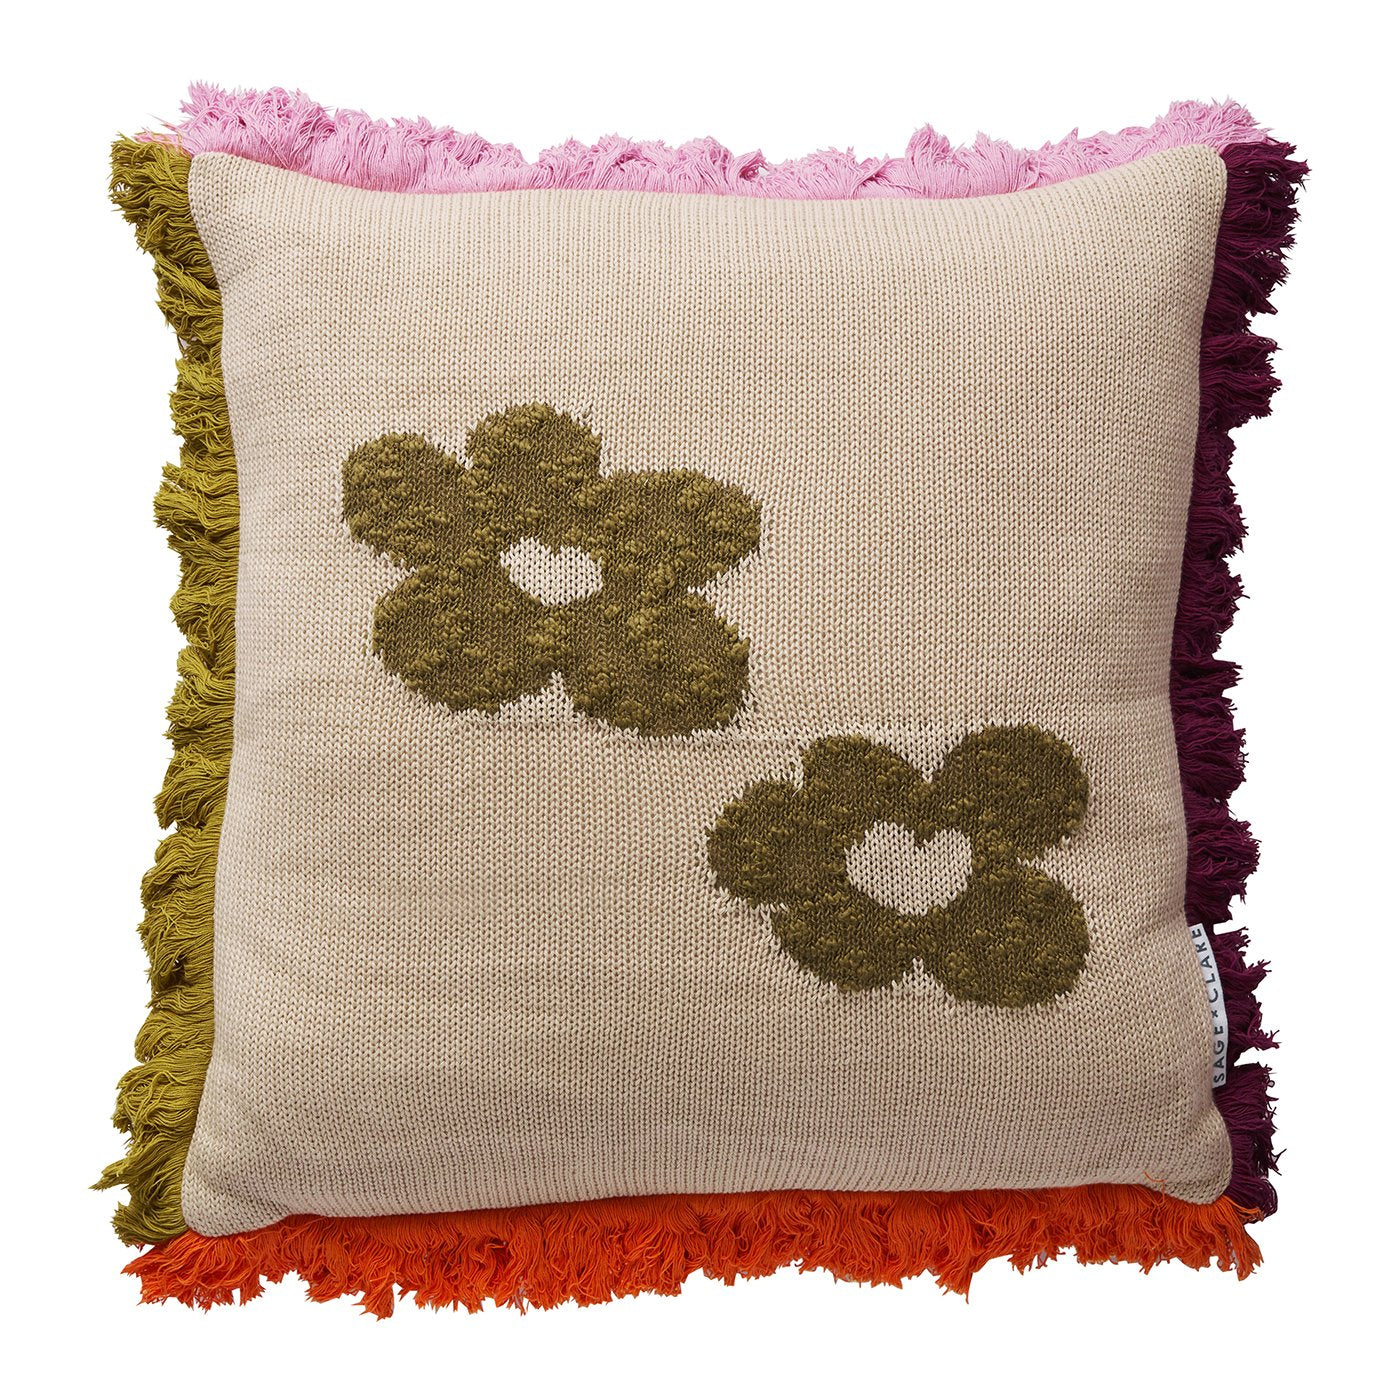 Hazel Flower Cushion in knitted parchment with hazel flowers and coloured fringing